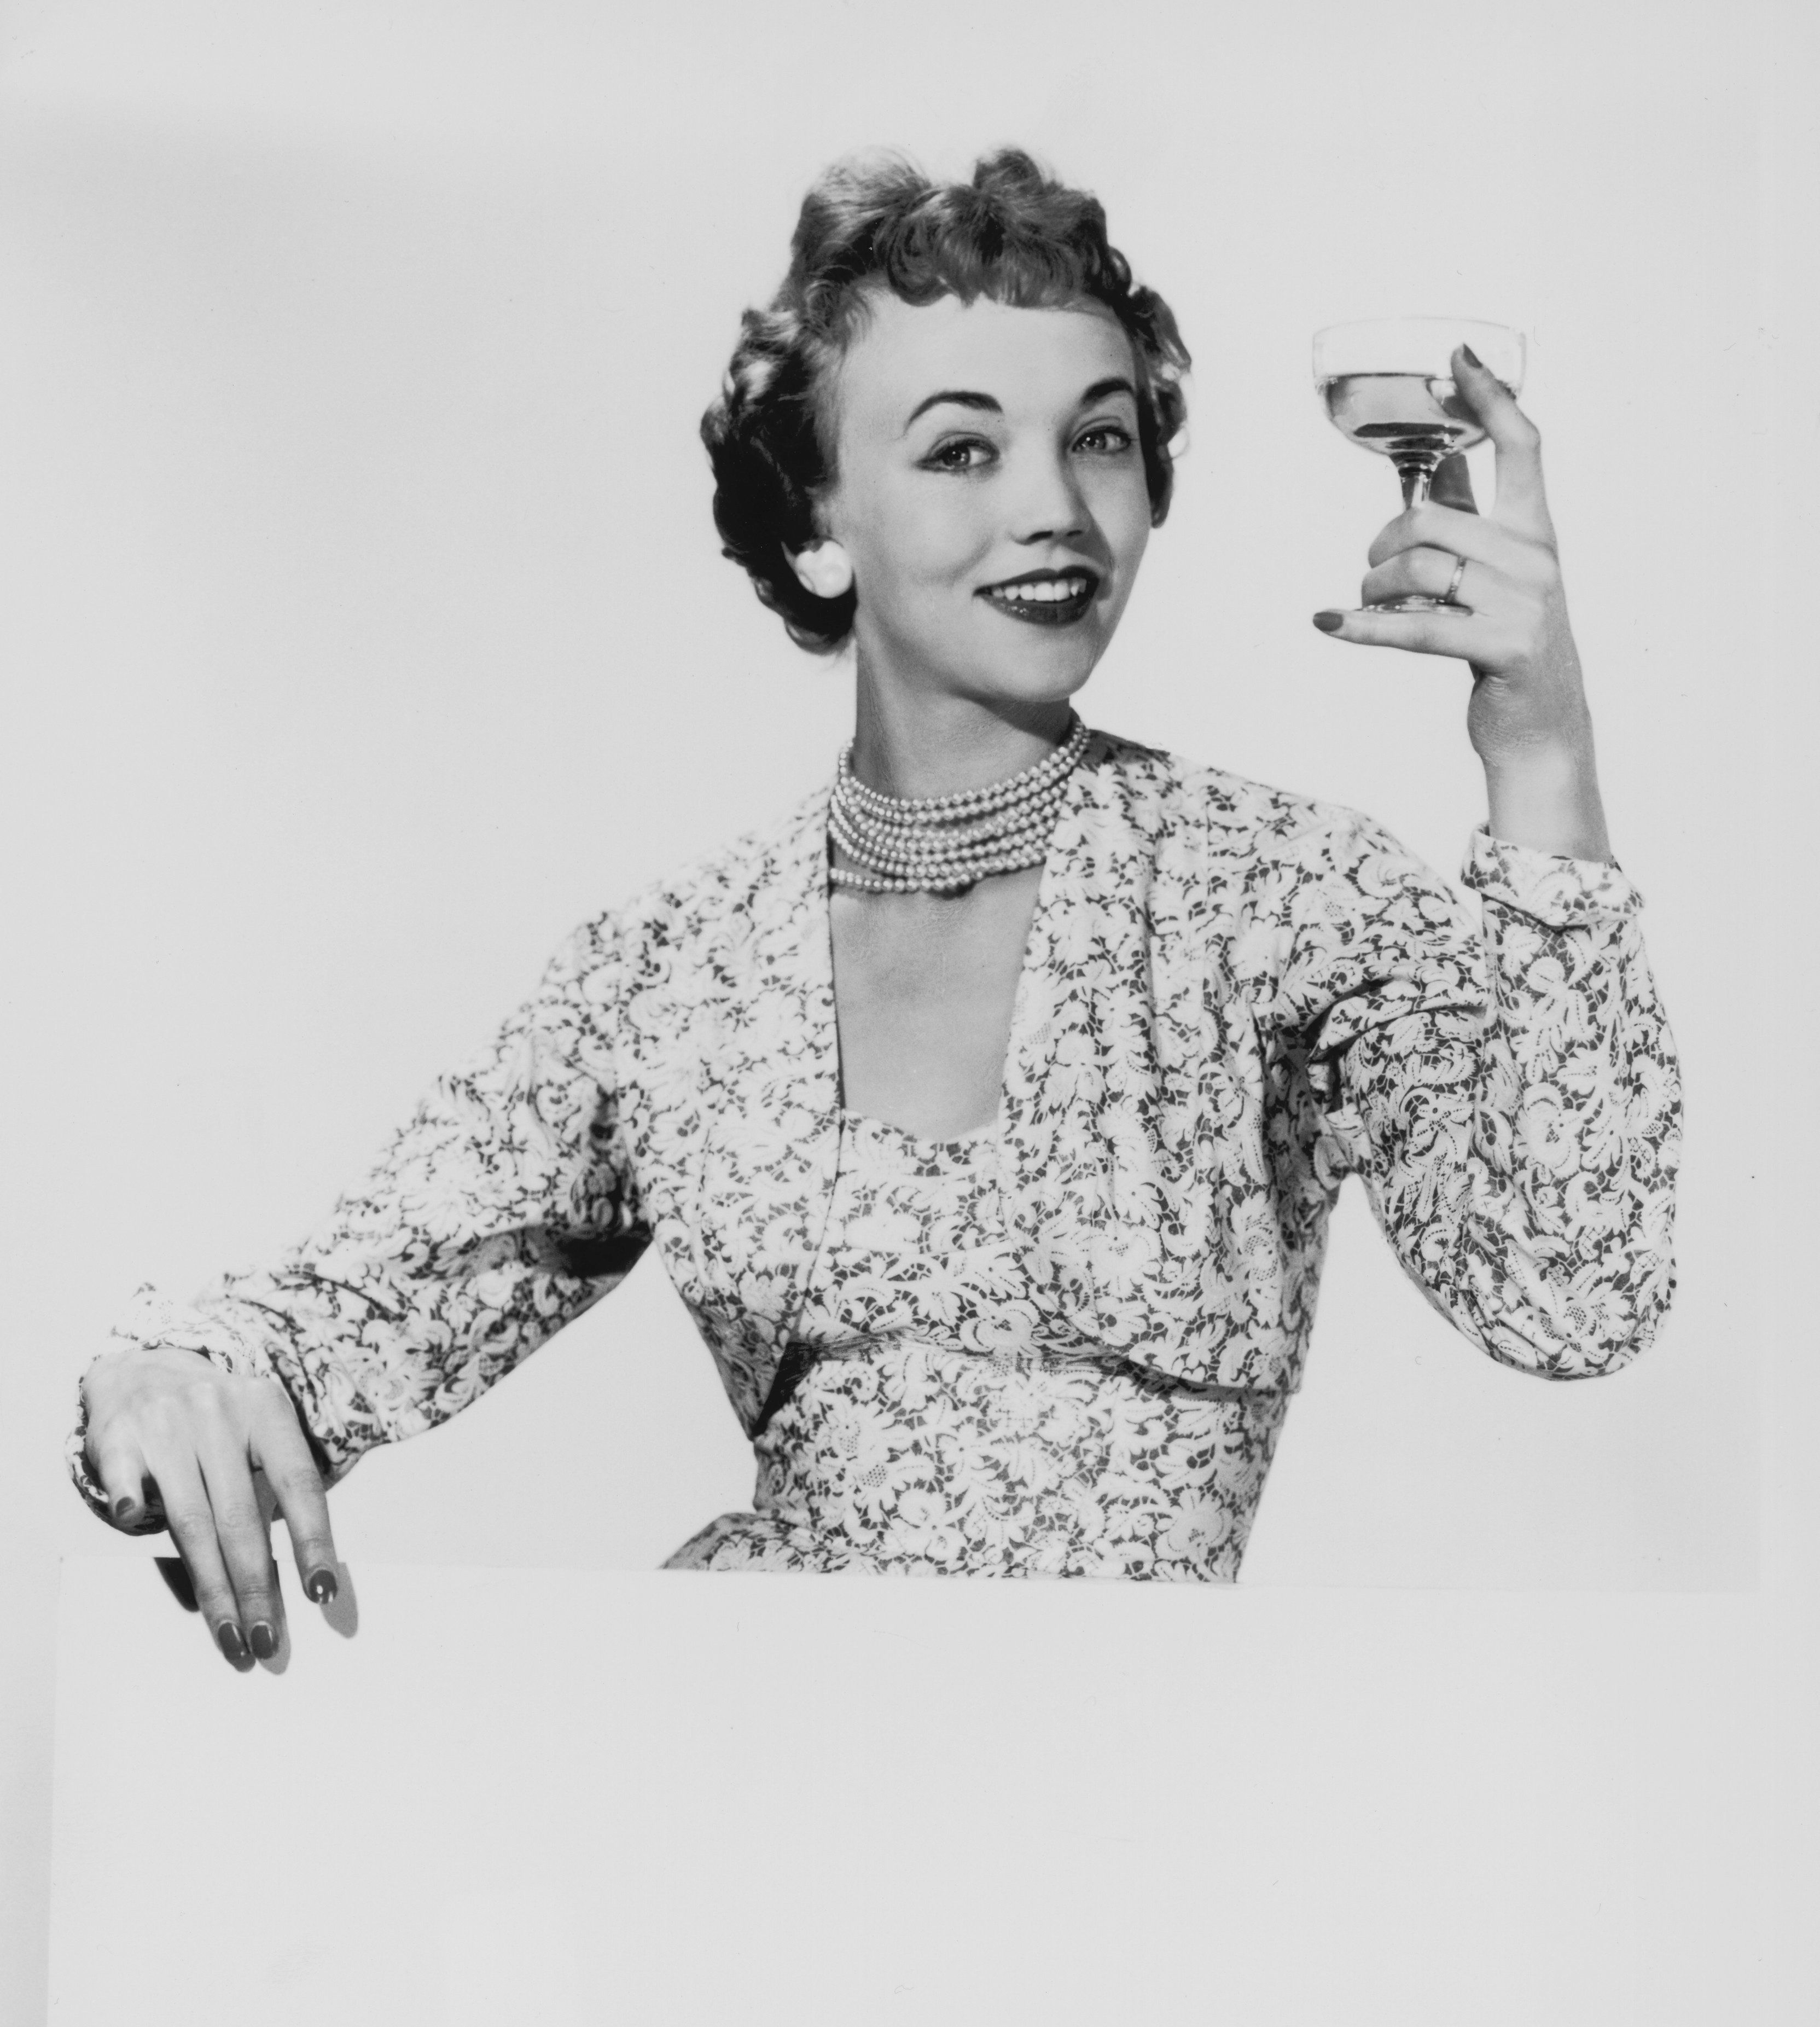 1955:  A woman in a matching dress and bolero proposes a toast.  (Photo by Chaloner Woods/Getty Images)